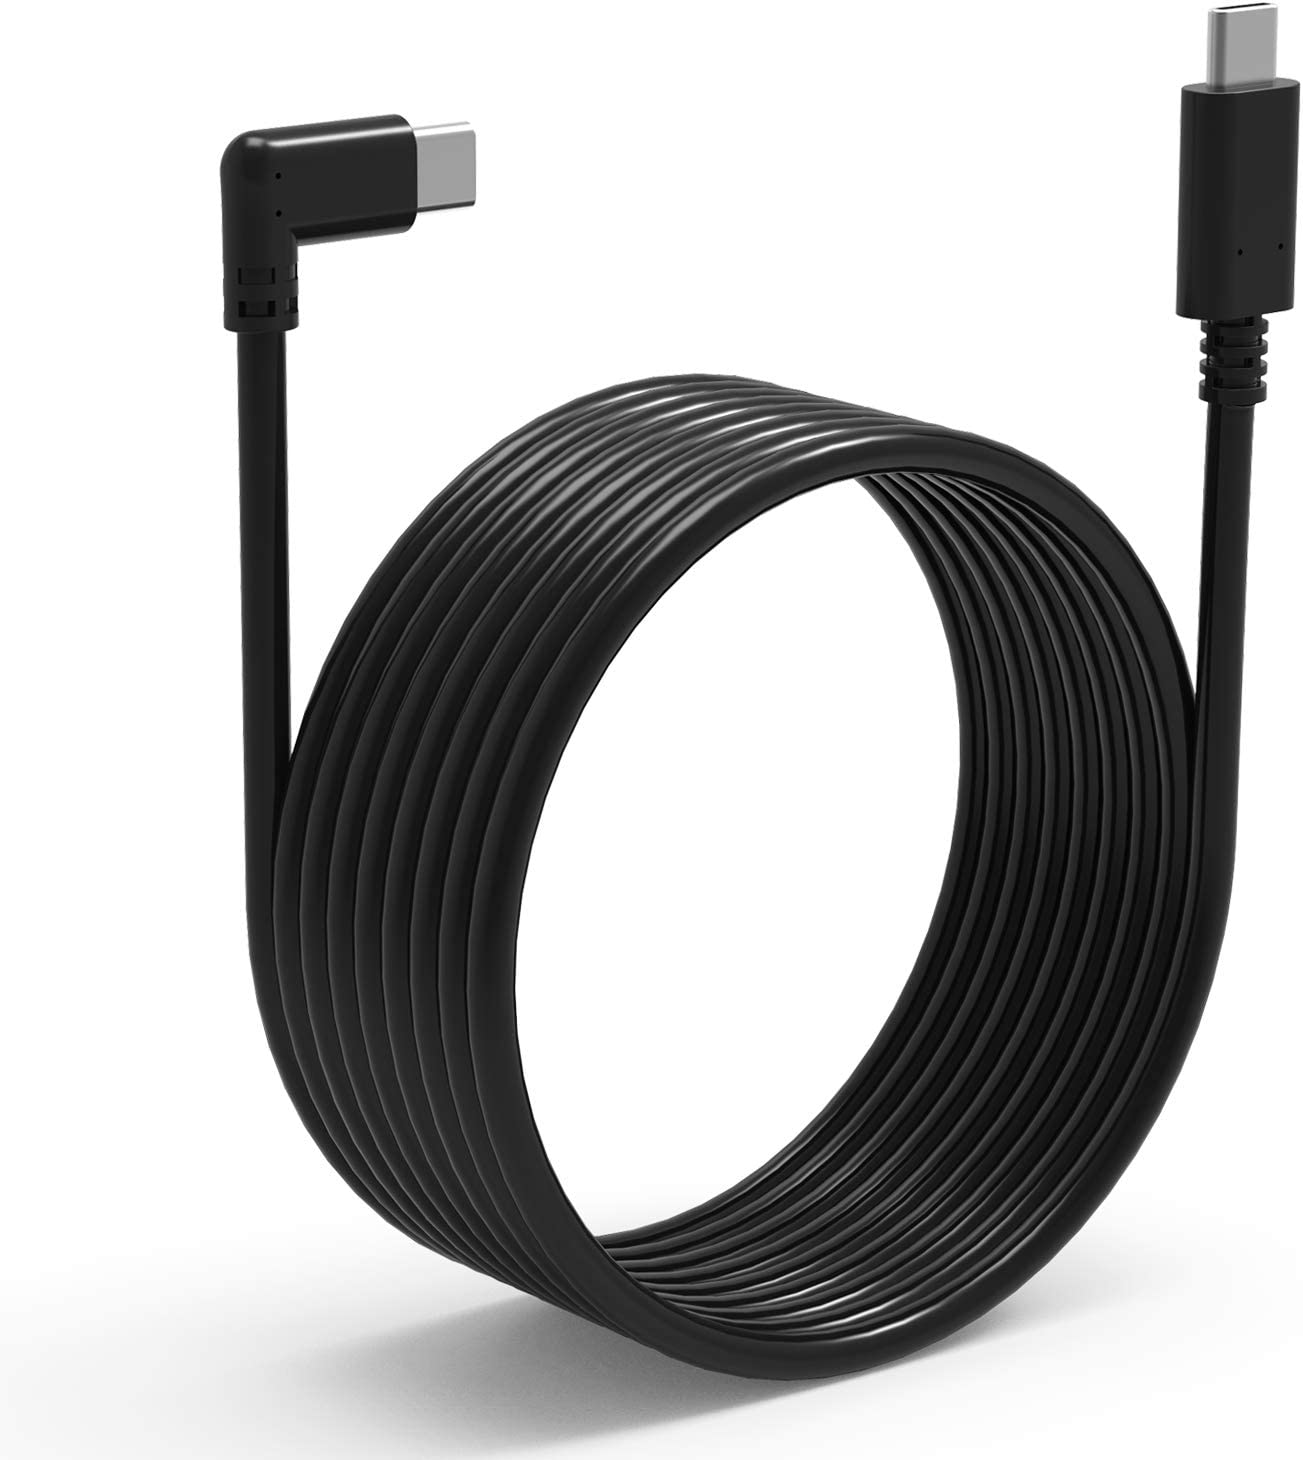 STALINK USB-C Male to Male Oculus Link Cable. Support High Speed Data Transfer Fast Charging Cord Compatible for Oculus Quest 2 VR Headset and Gaming PC Laptop Accessories. (9.8 Feet / 3M)